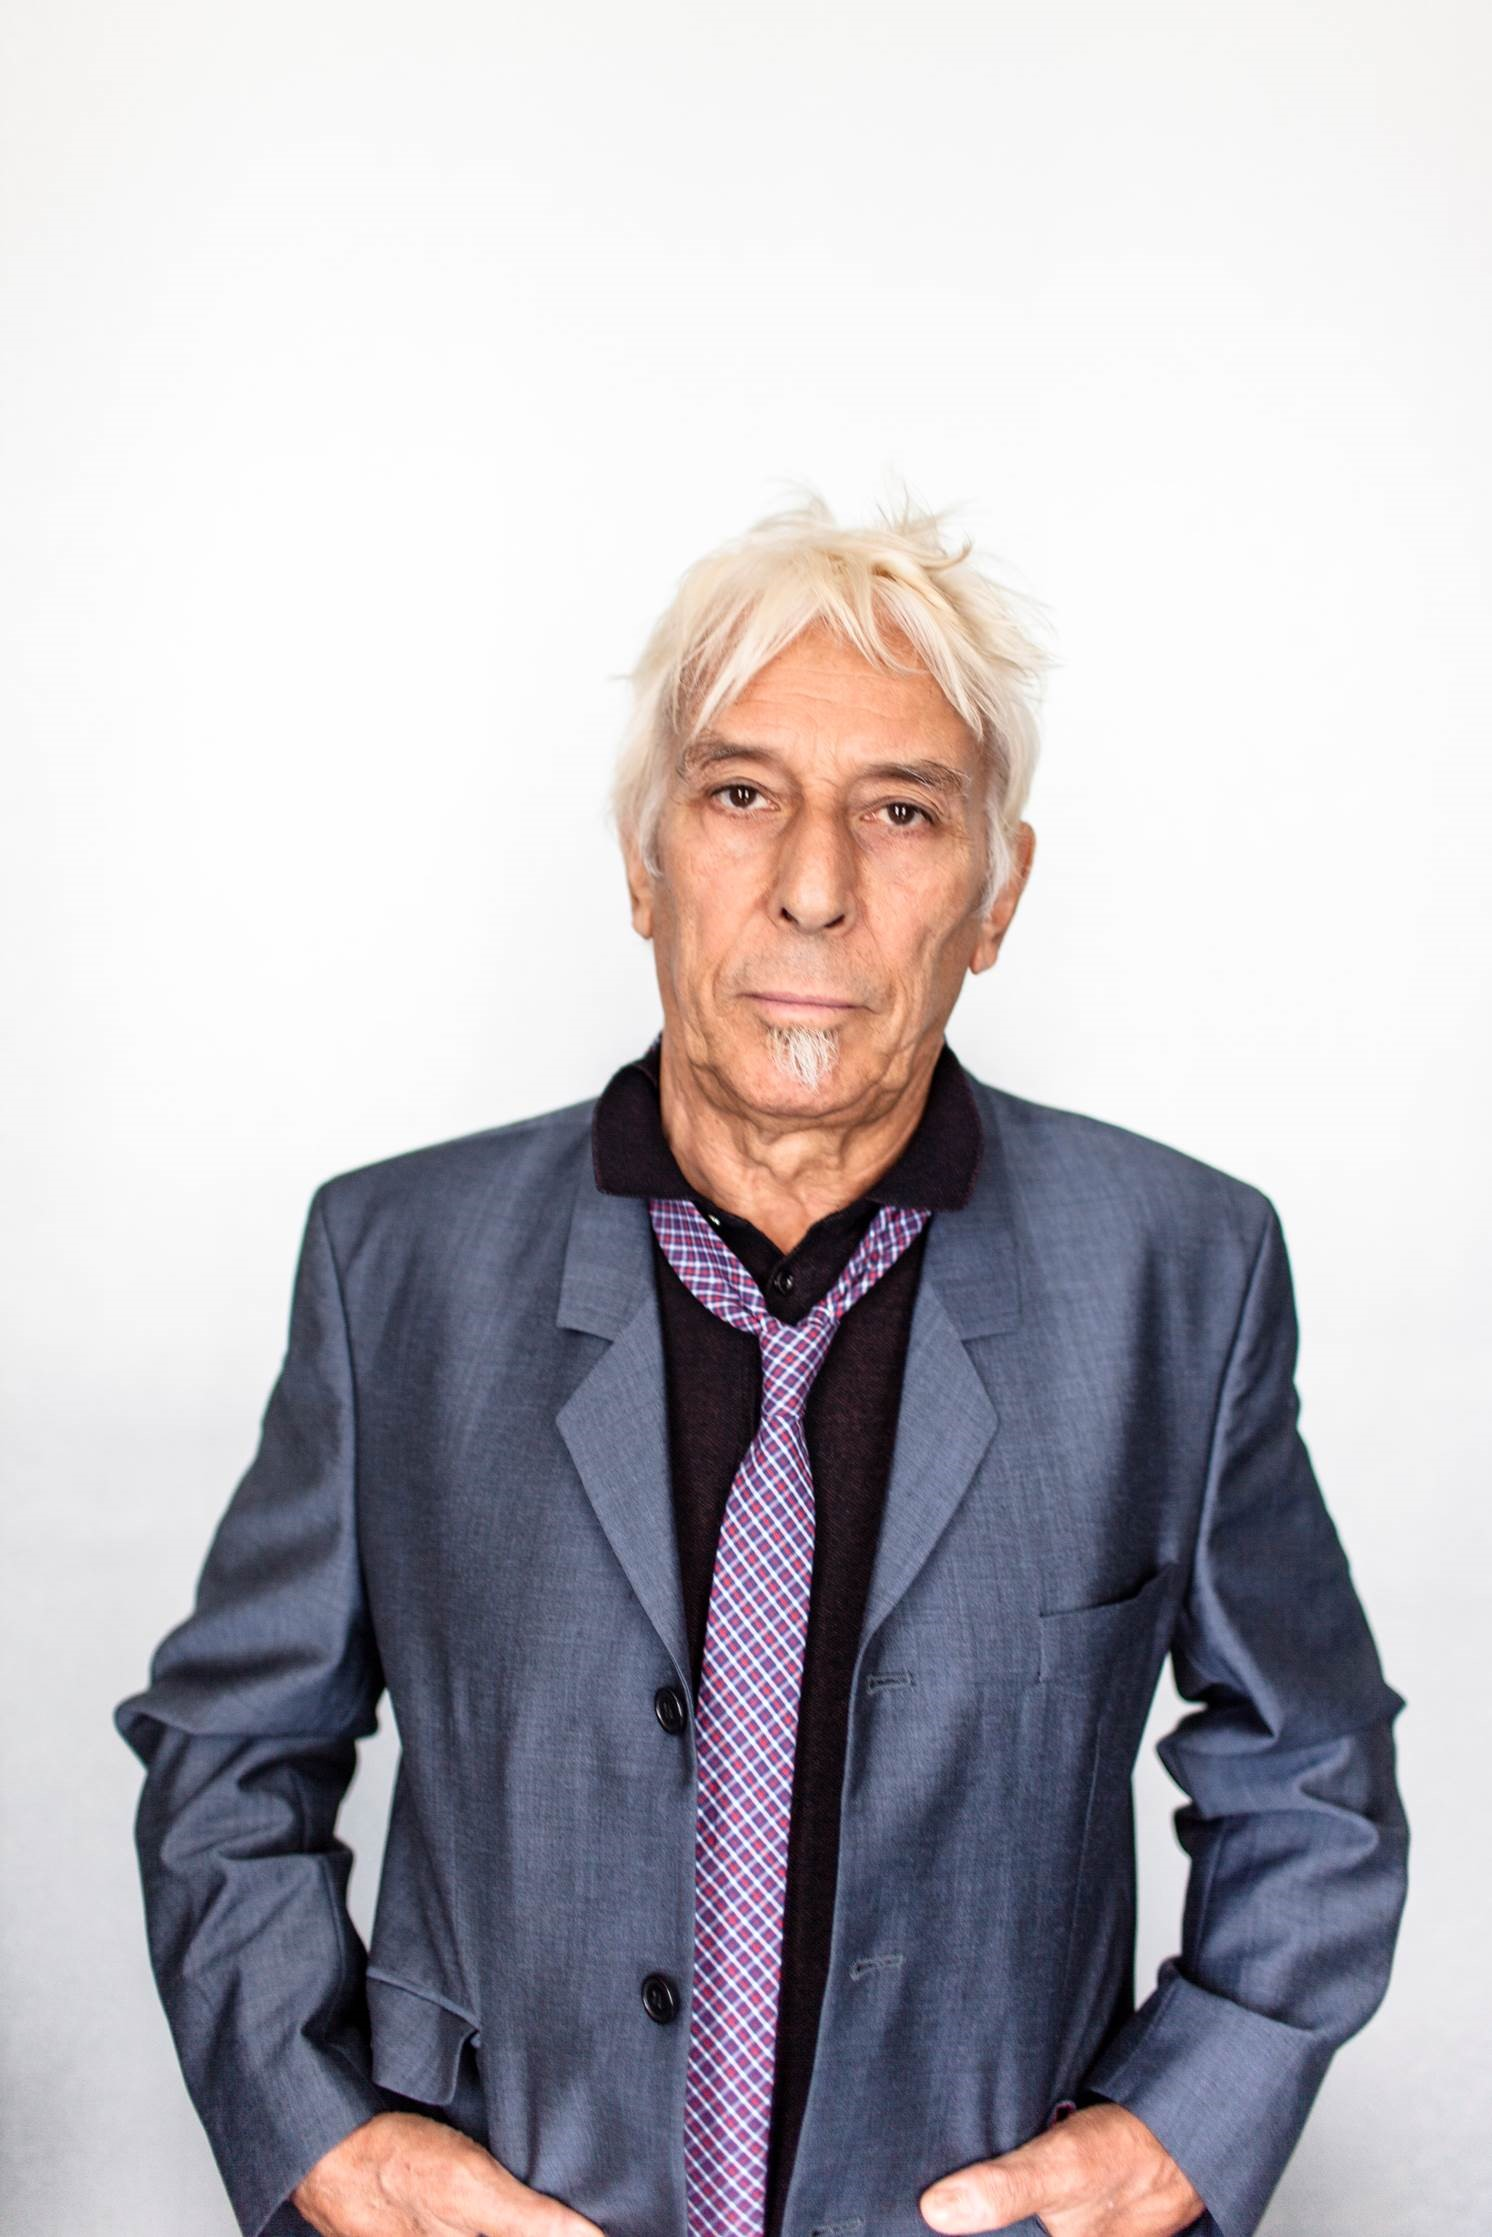 Ghent Jazz Festival unveils new names including John Cale